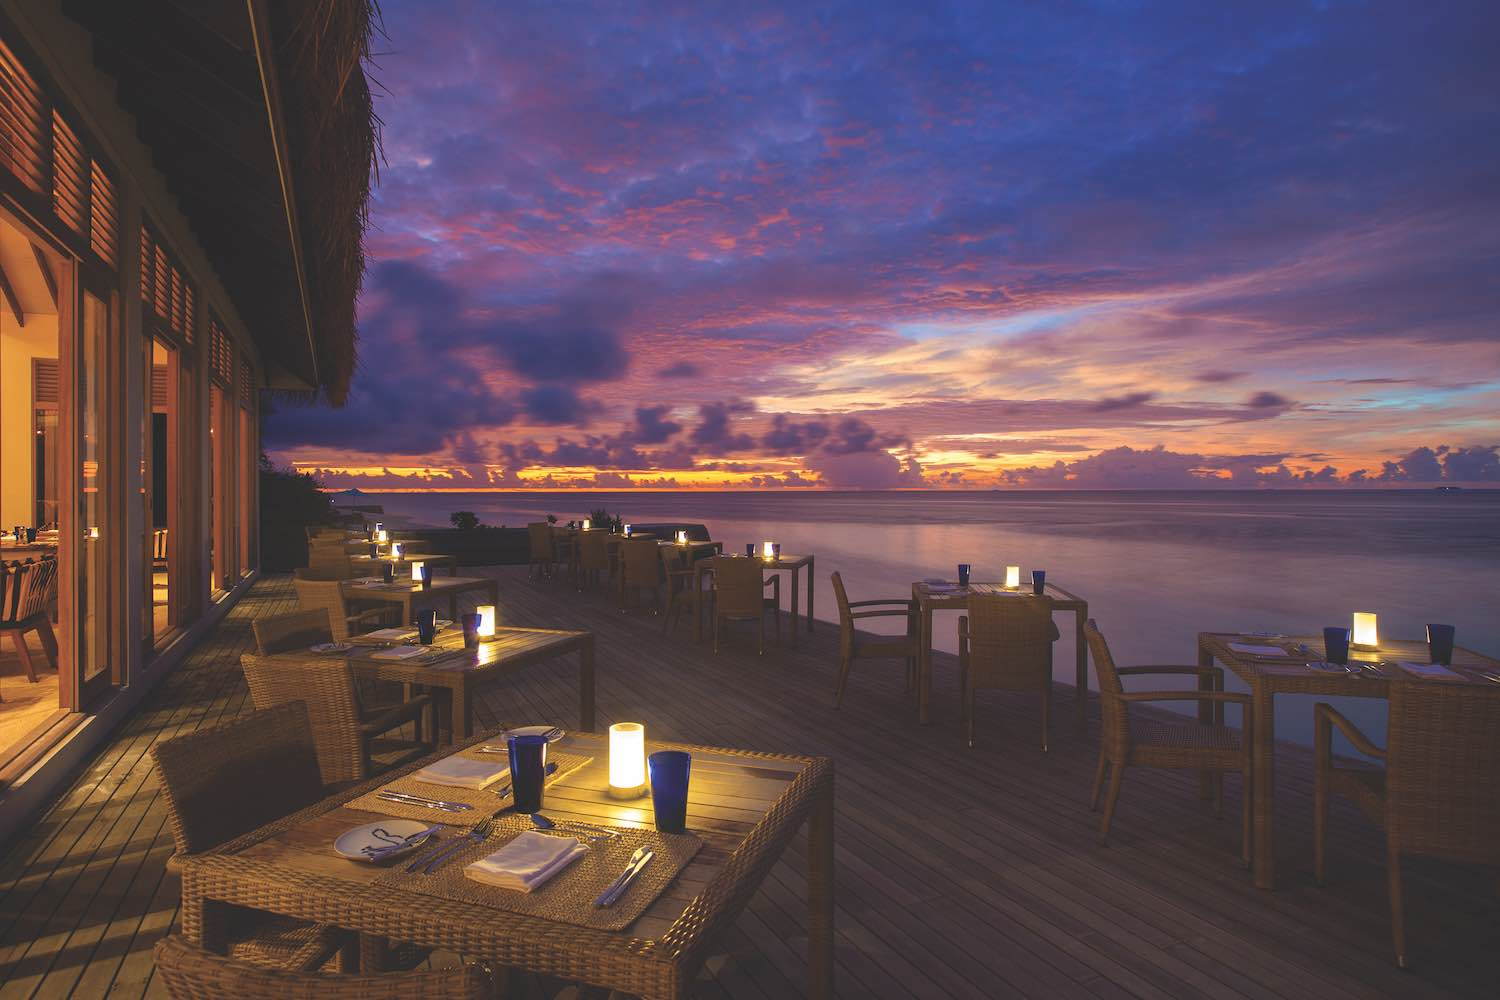 maldives-oblu-by-atmosphere-at-helengeli-spice-restaurant-deck-holiday-honeymoon-vacation-invite-to-paradise.jpg